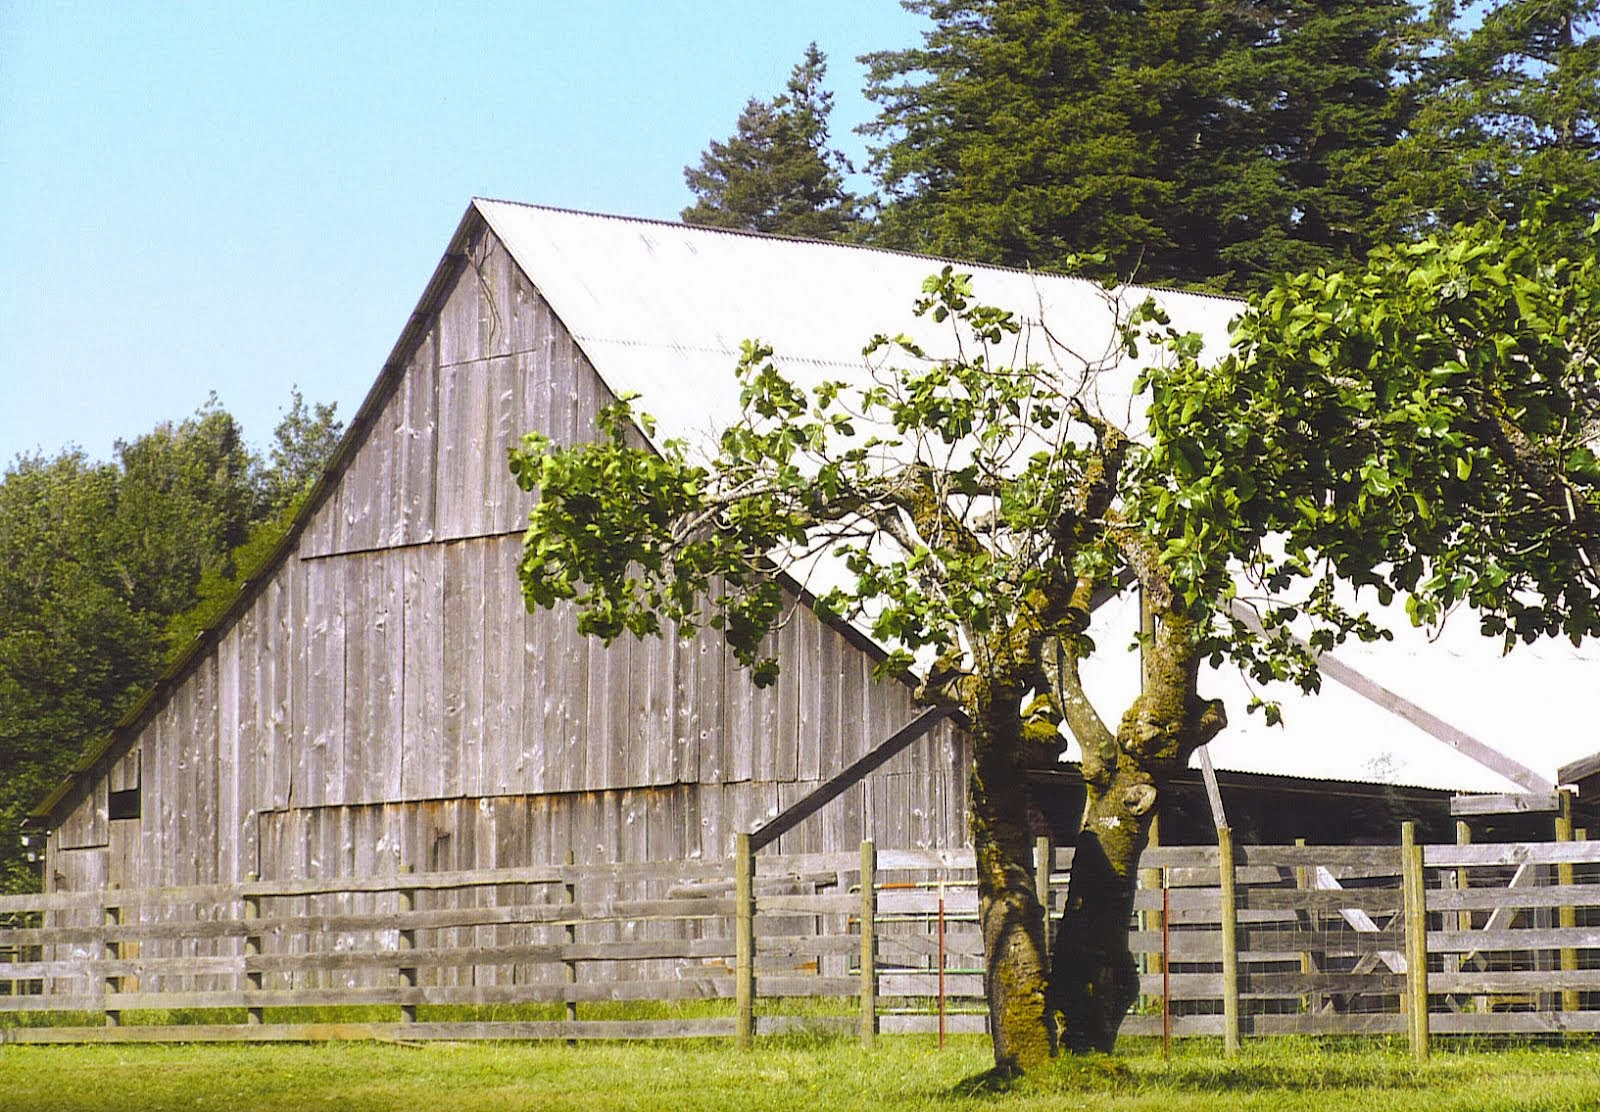 This barn is in Yamhill Oregon